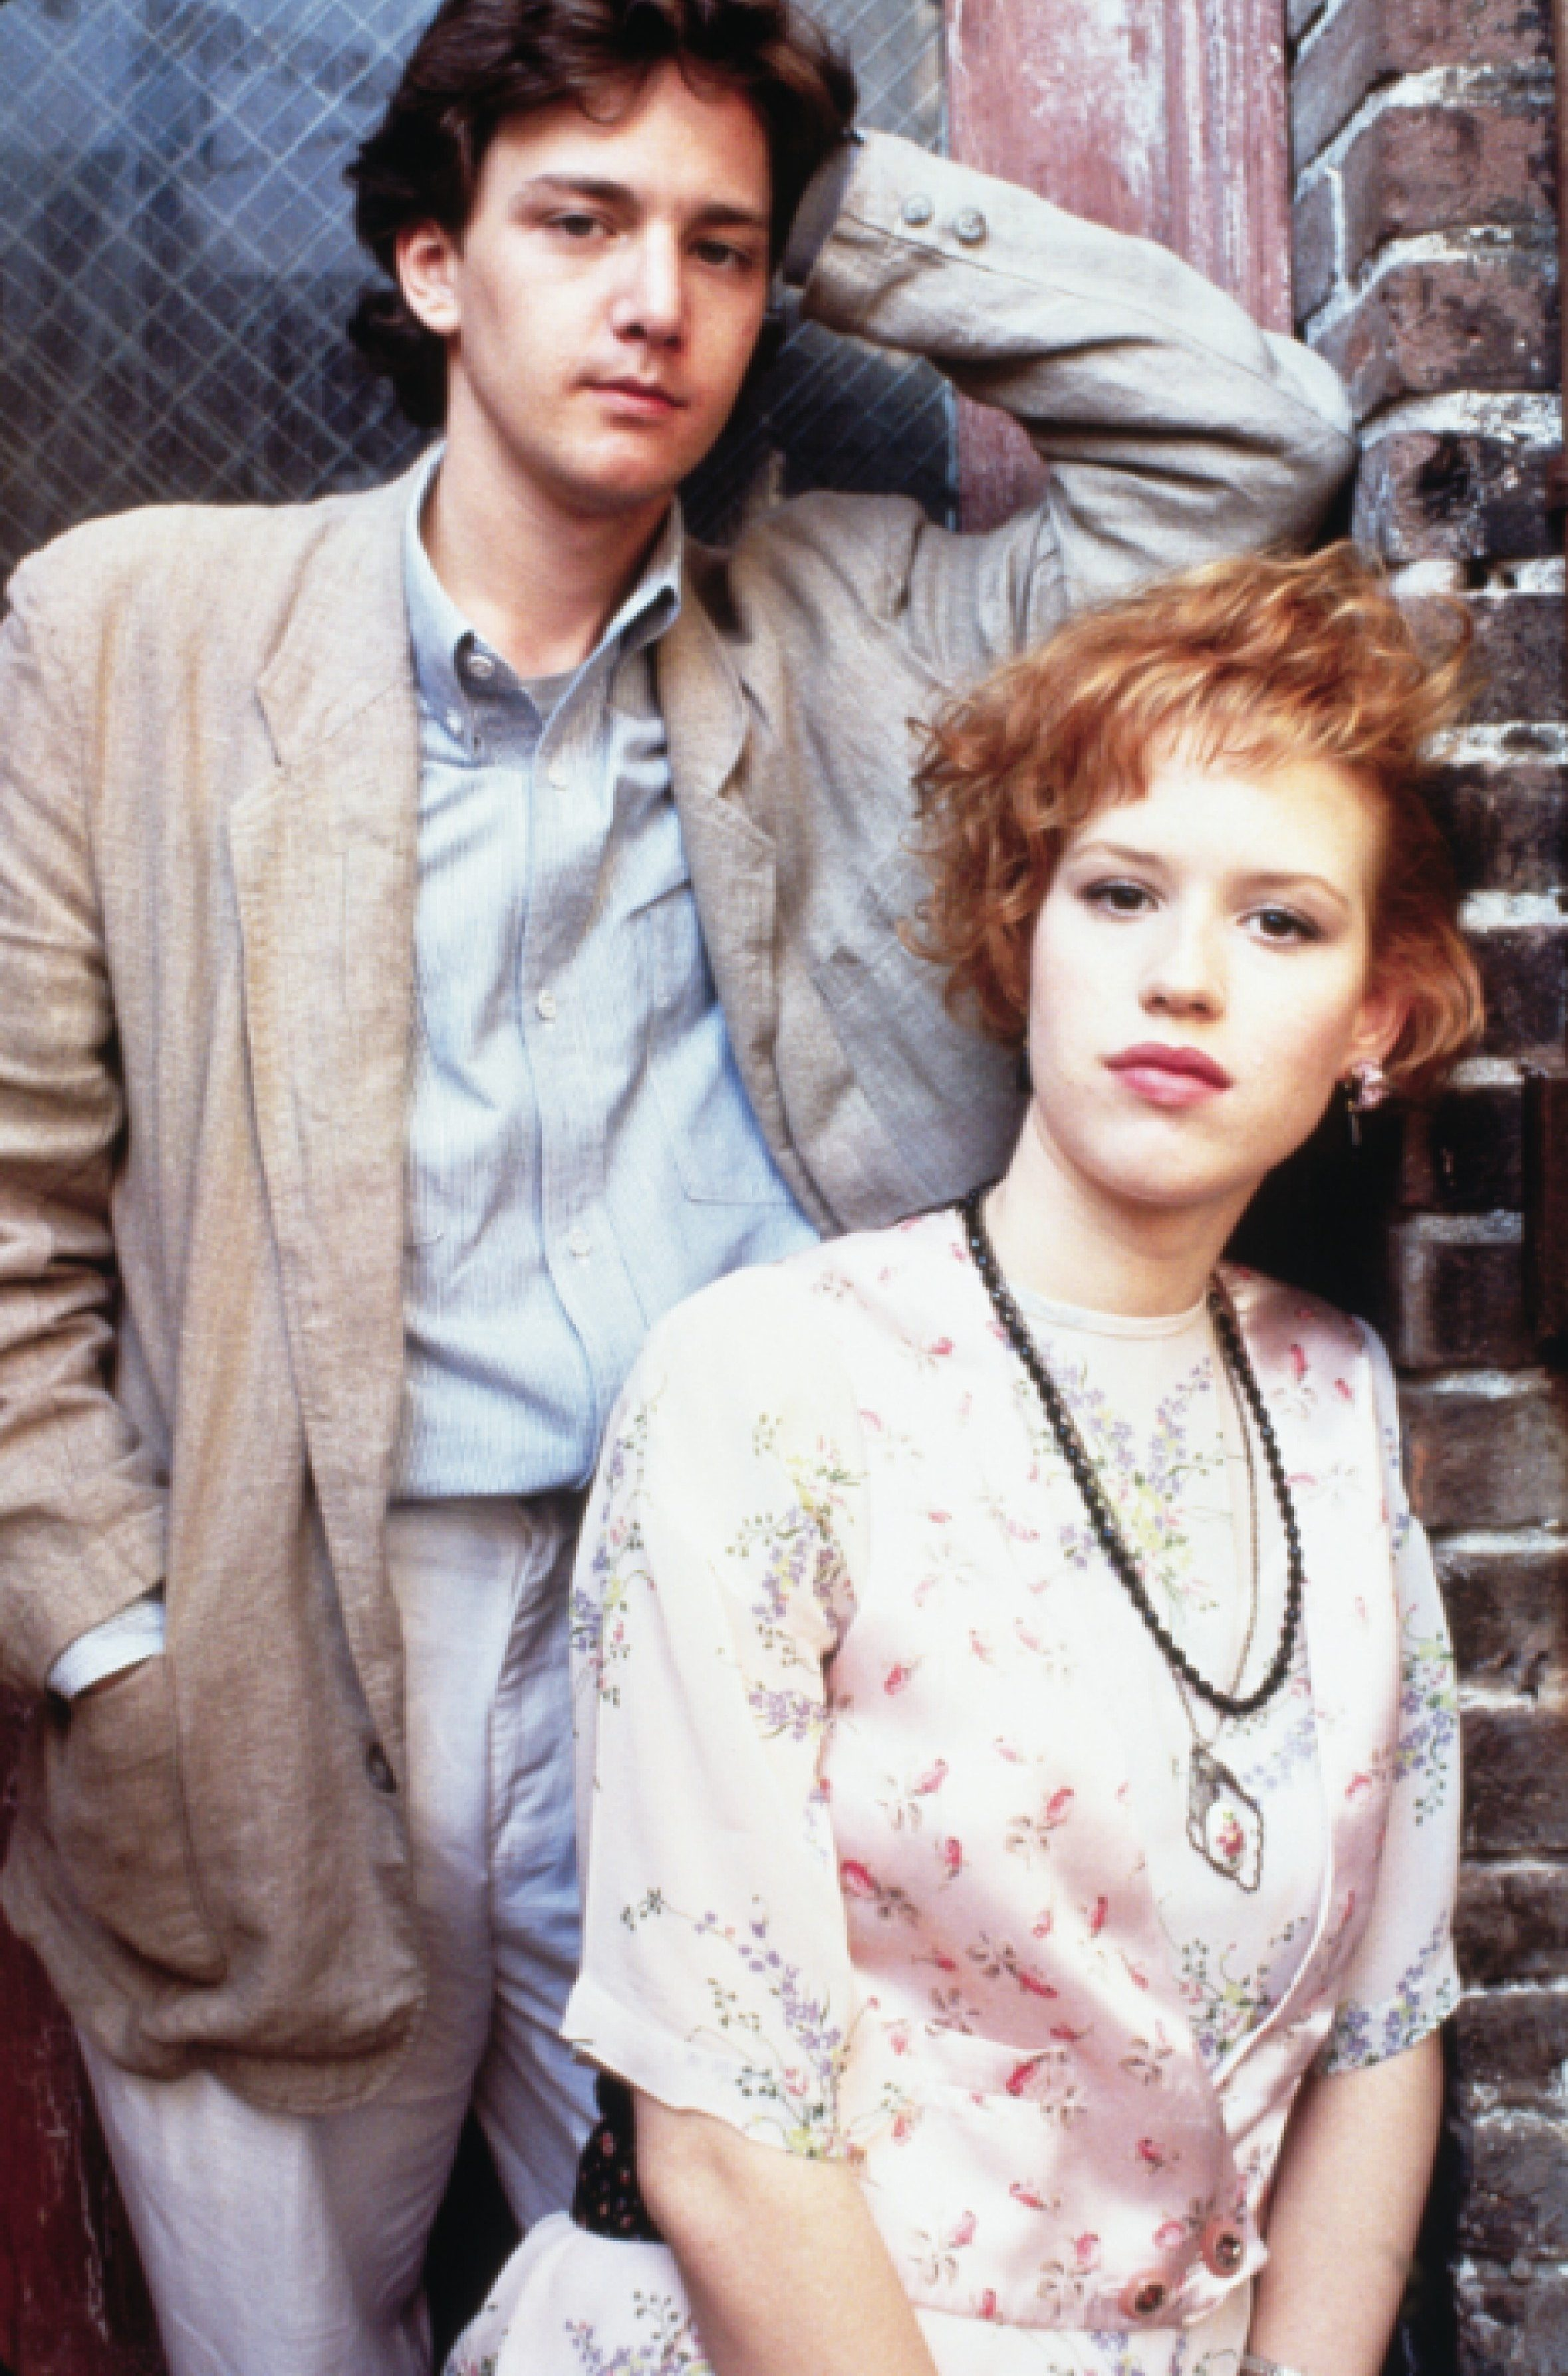 pretty 73 e1588681471702 20 Good-Looking Facts You Never Knew About Pretty In Pink